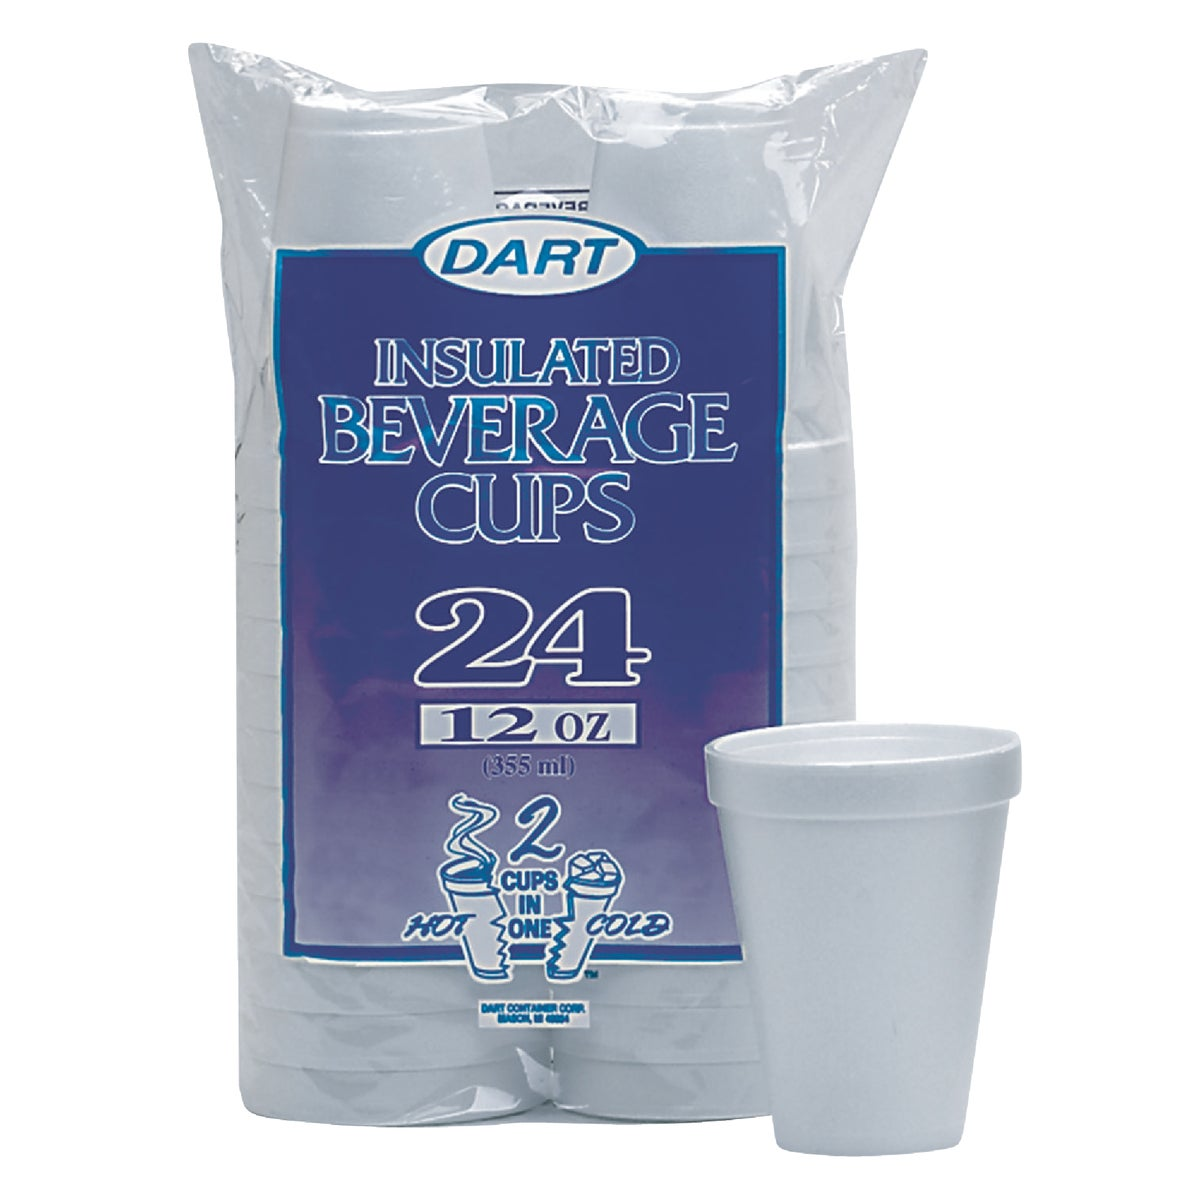 12OZ FOAM CUPS - 12JP24 by Dart Cont/d Bassett